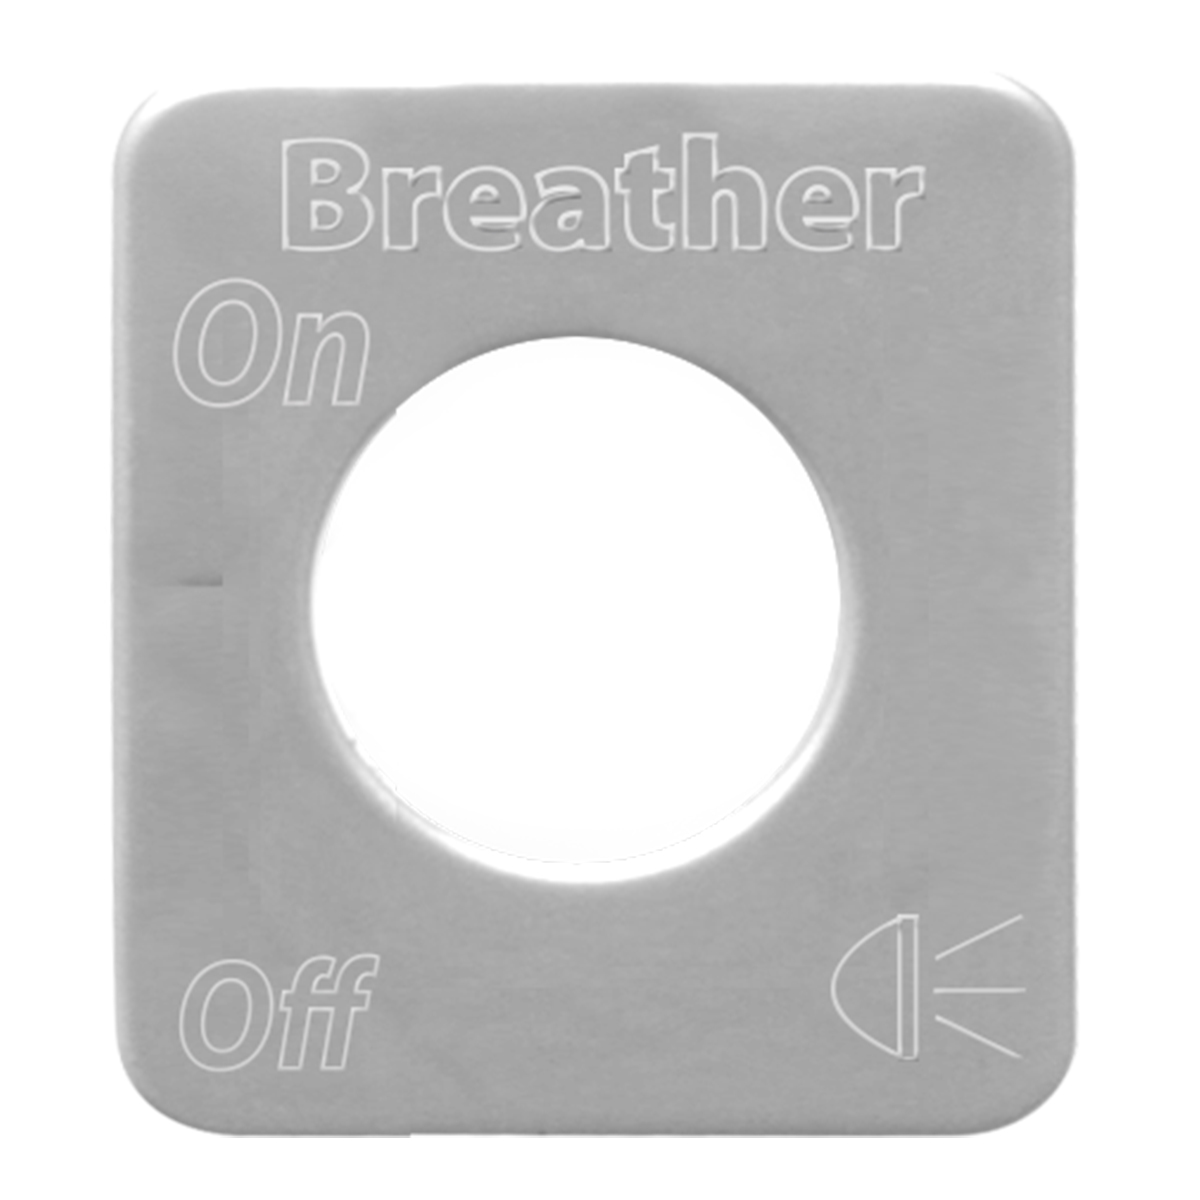 68526 Stainless Steel Breather Light Switch Plate for KW